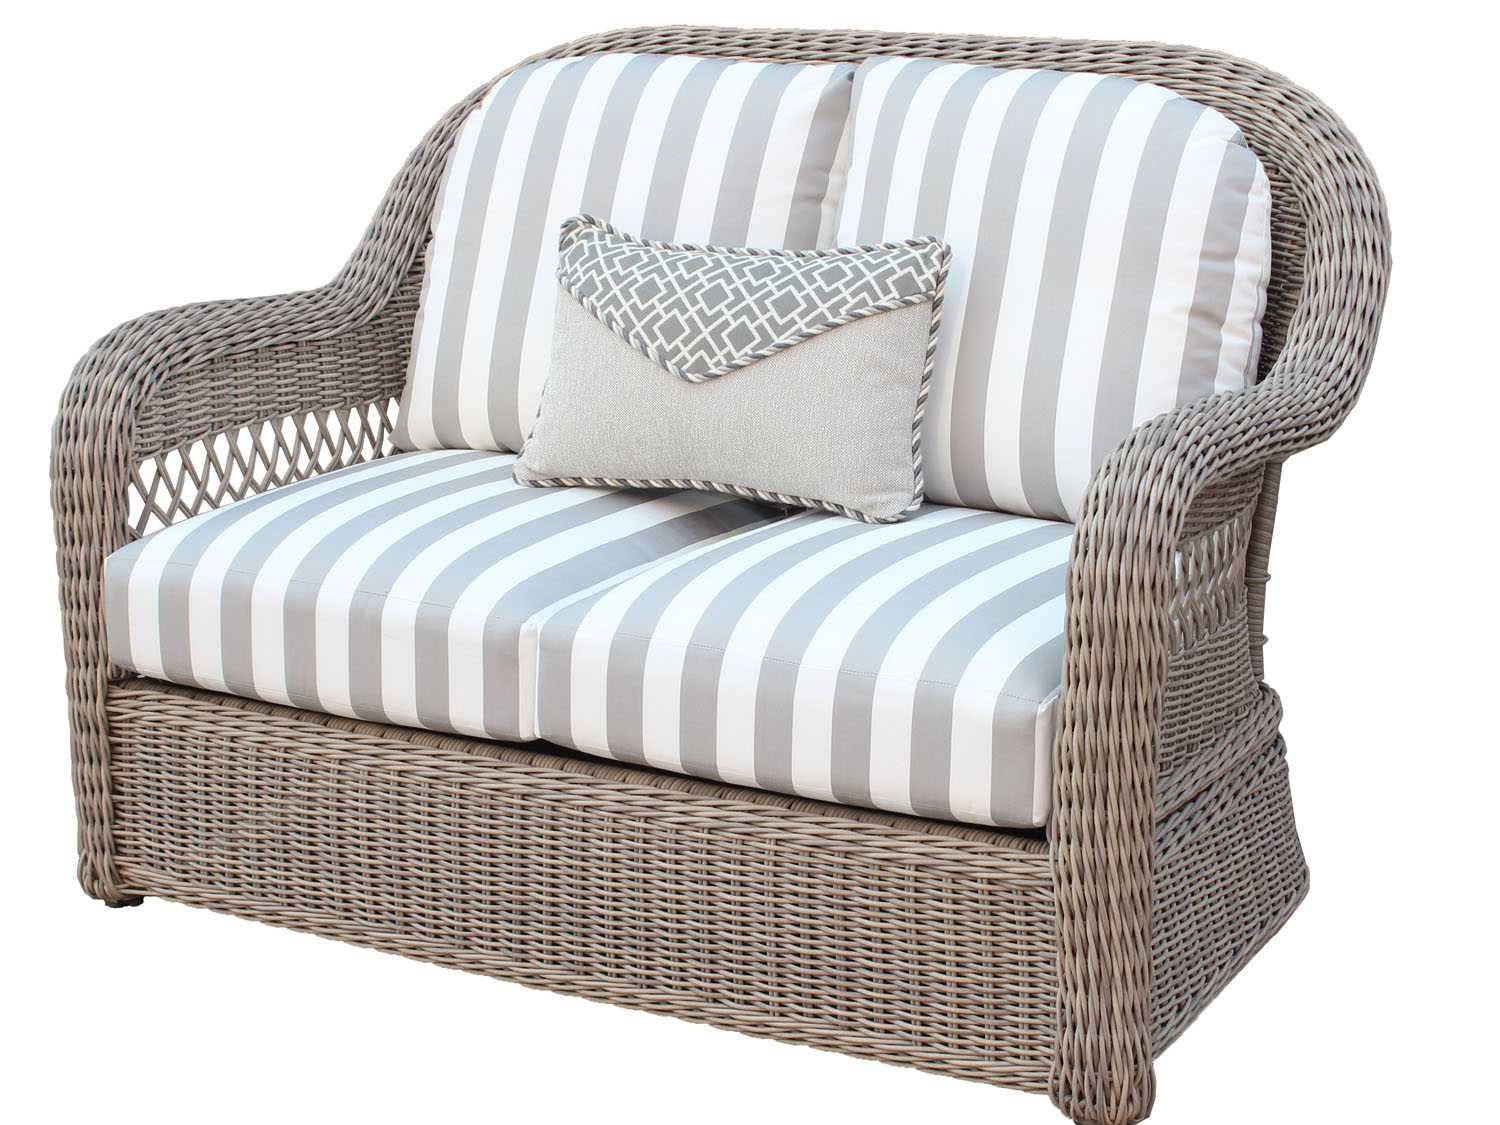 Marvelous photograph of South Sea Rattan Patio Done Quickly Arcadia Wicker Lounge Set  with #6E5B50 color and 1500x1125 pixels